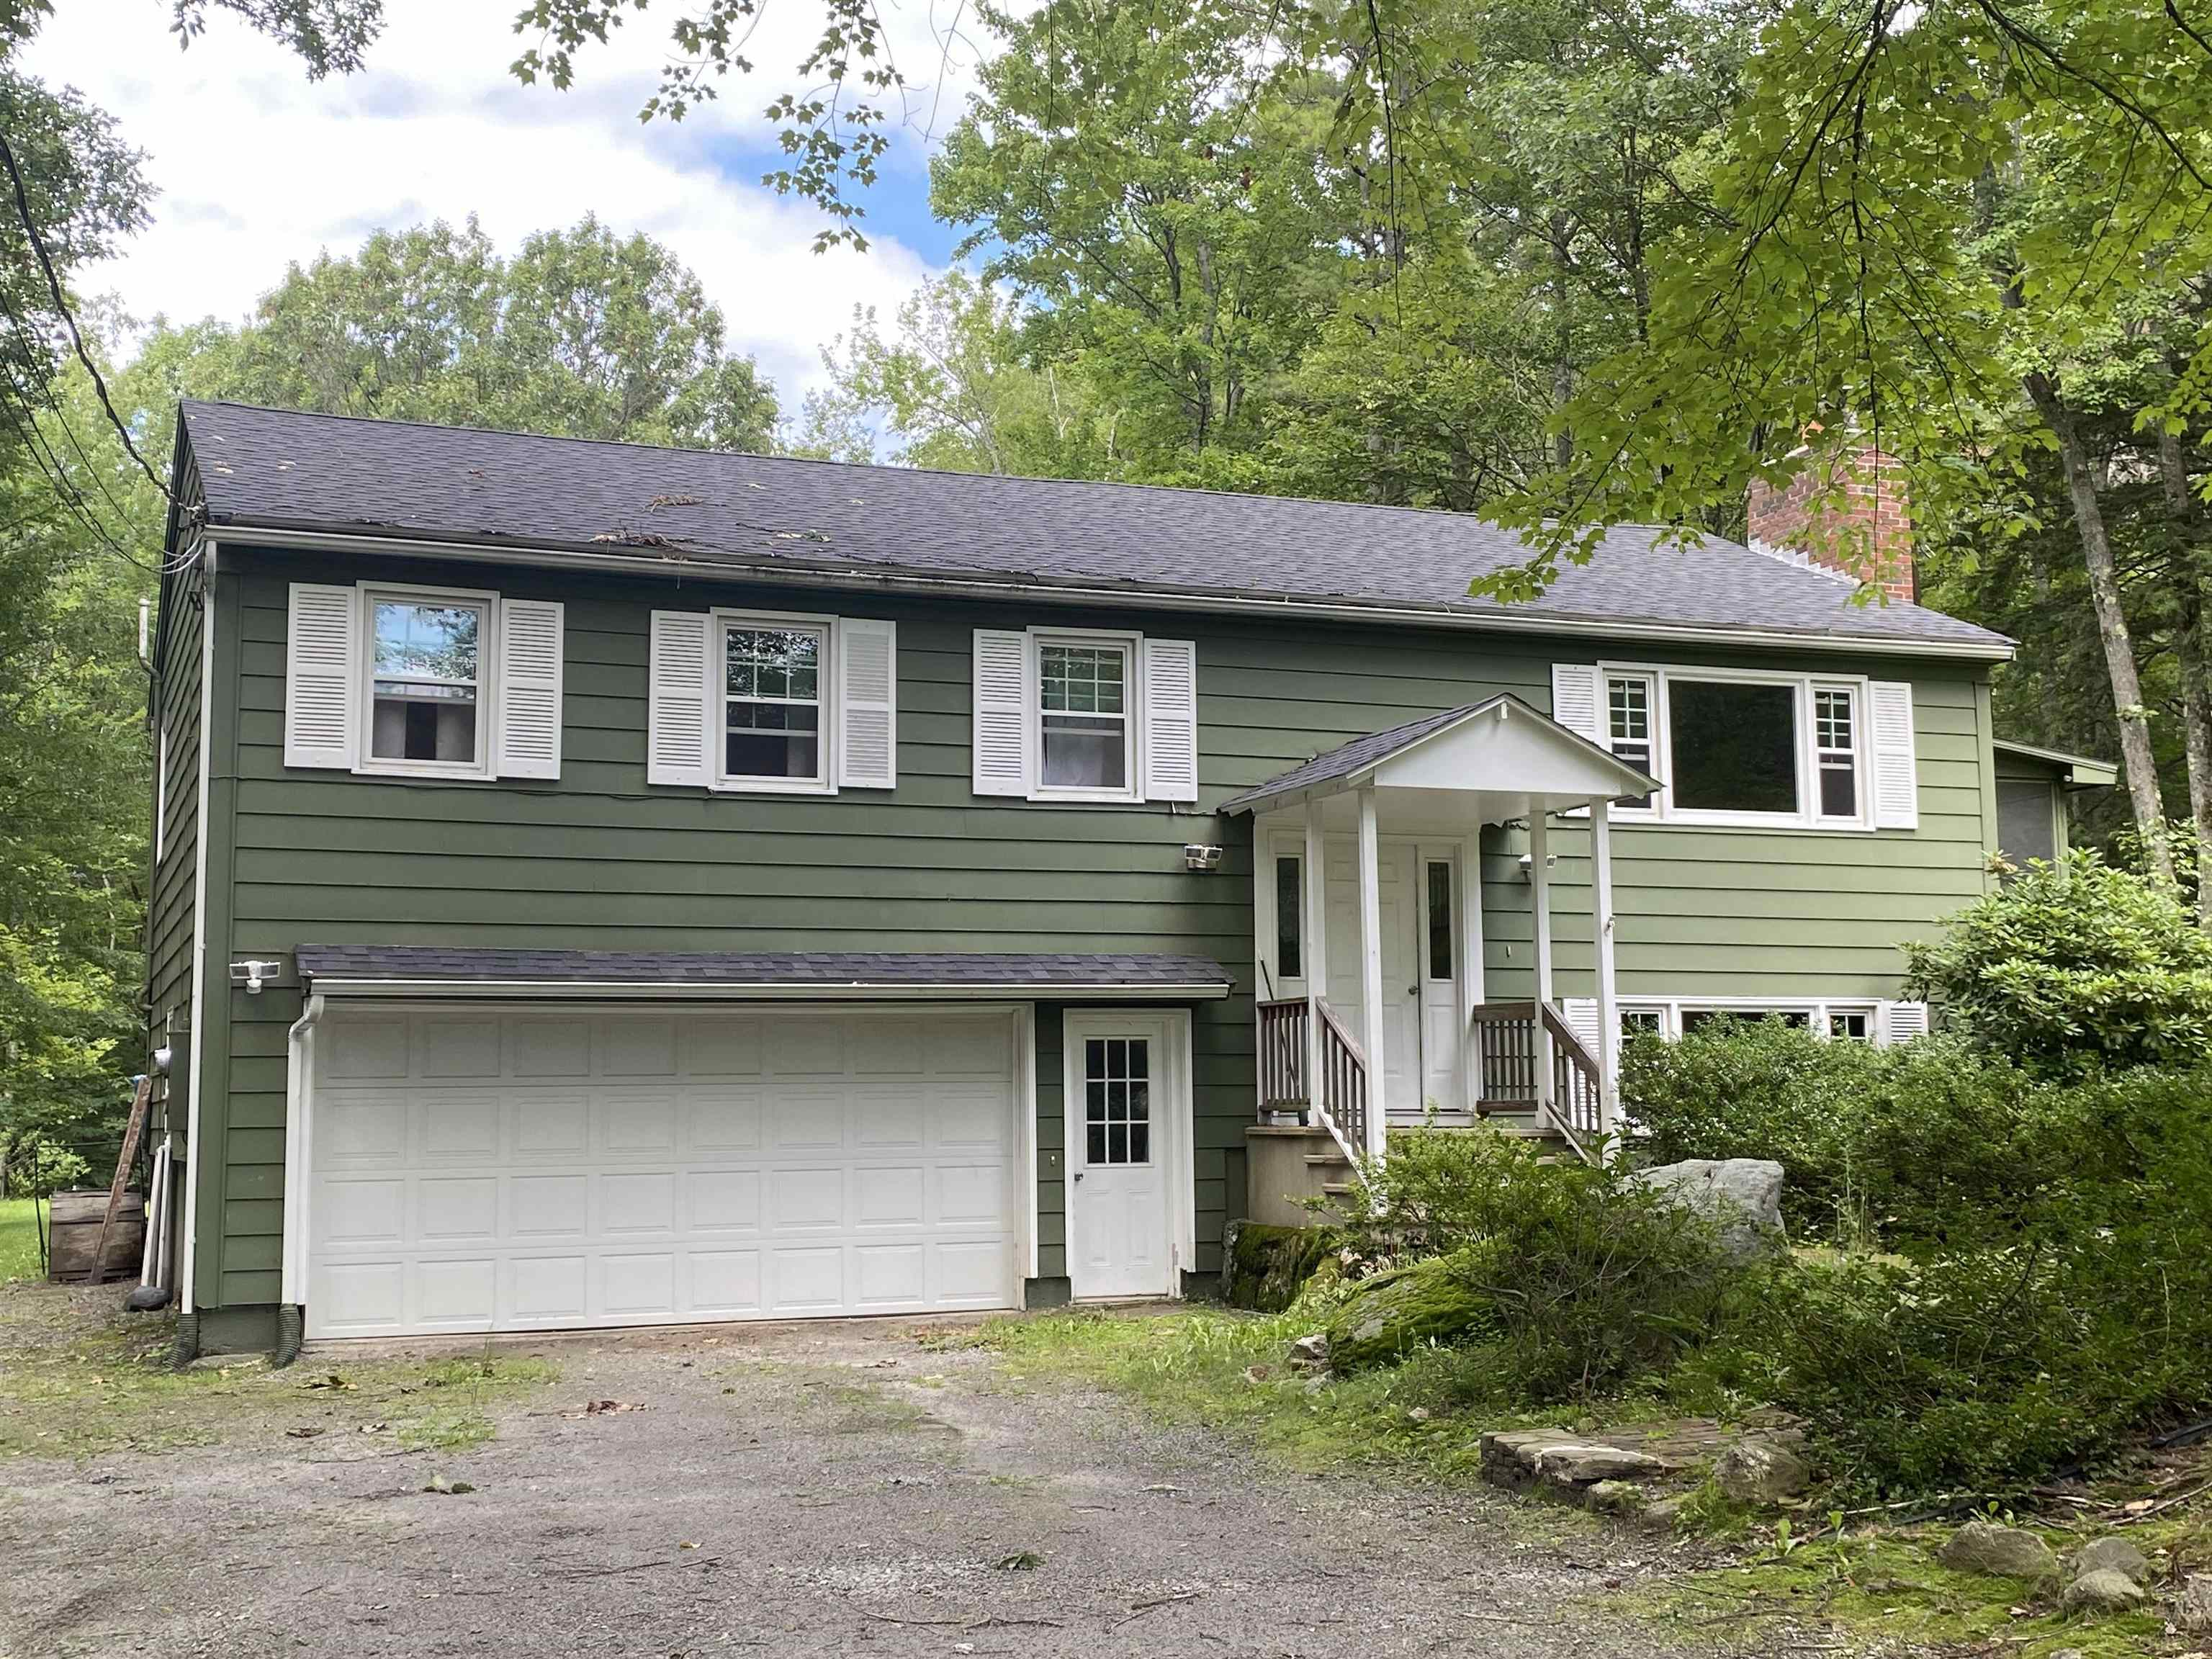 Photo of 571 New Boston Road Bedford NH 03110